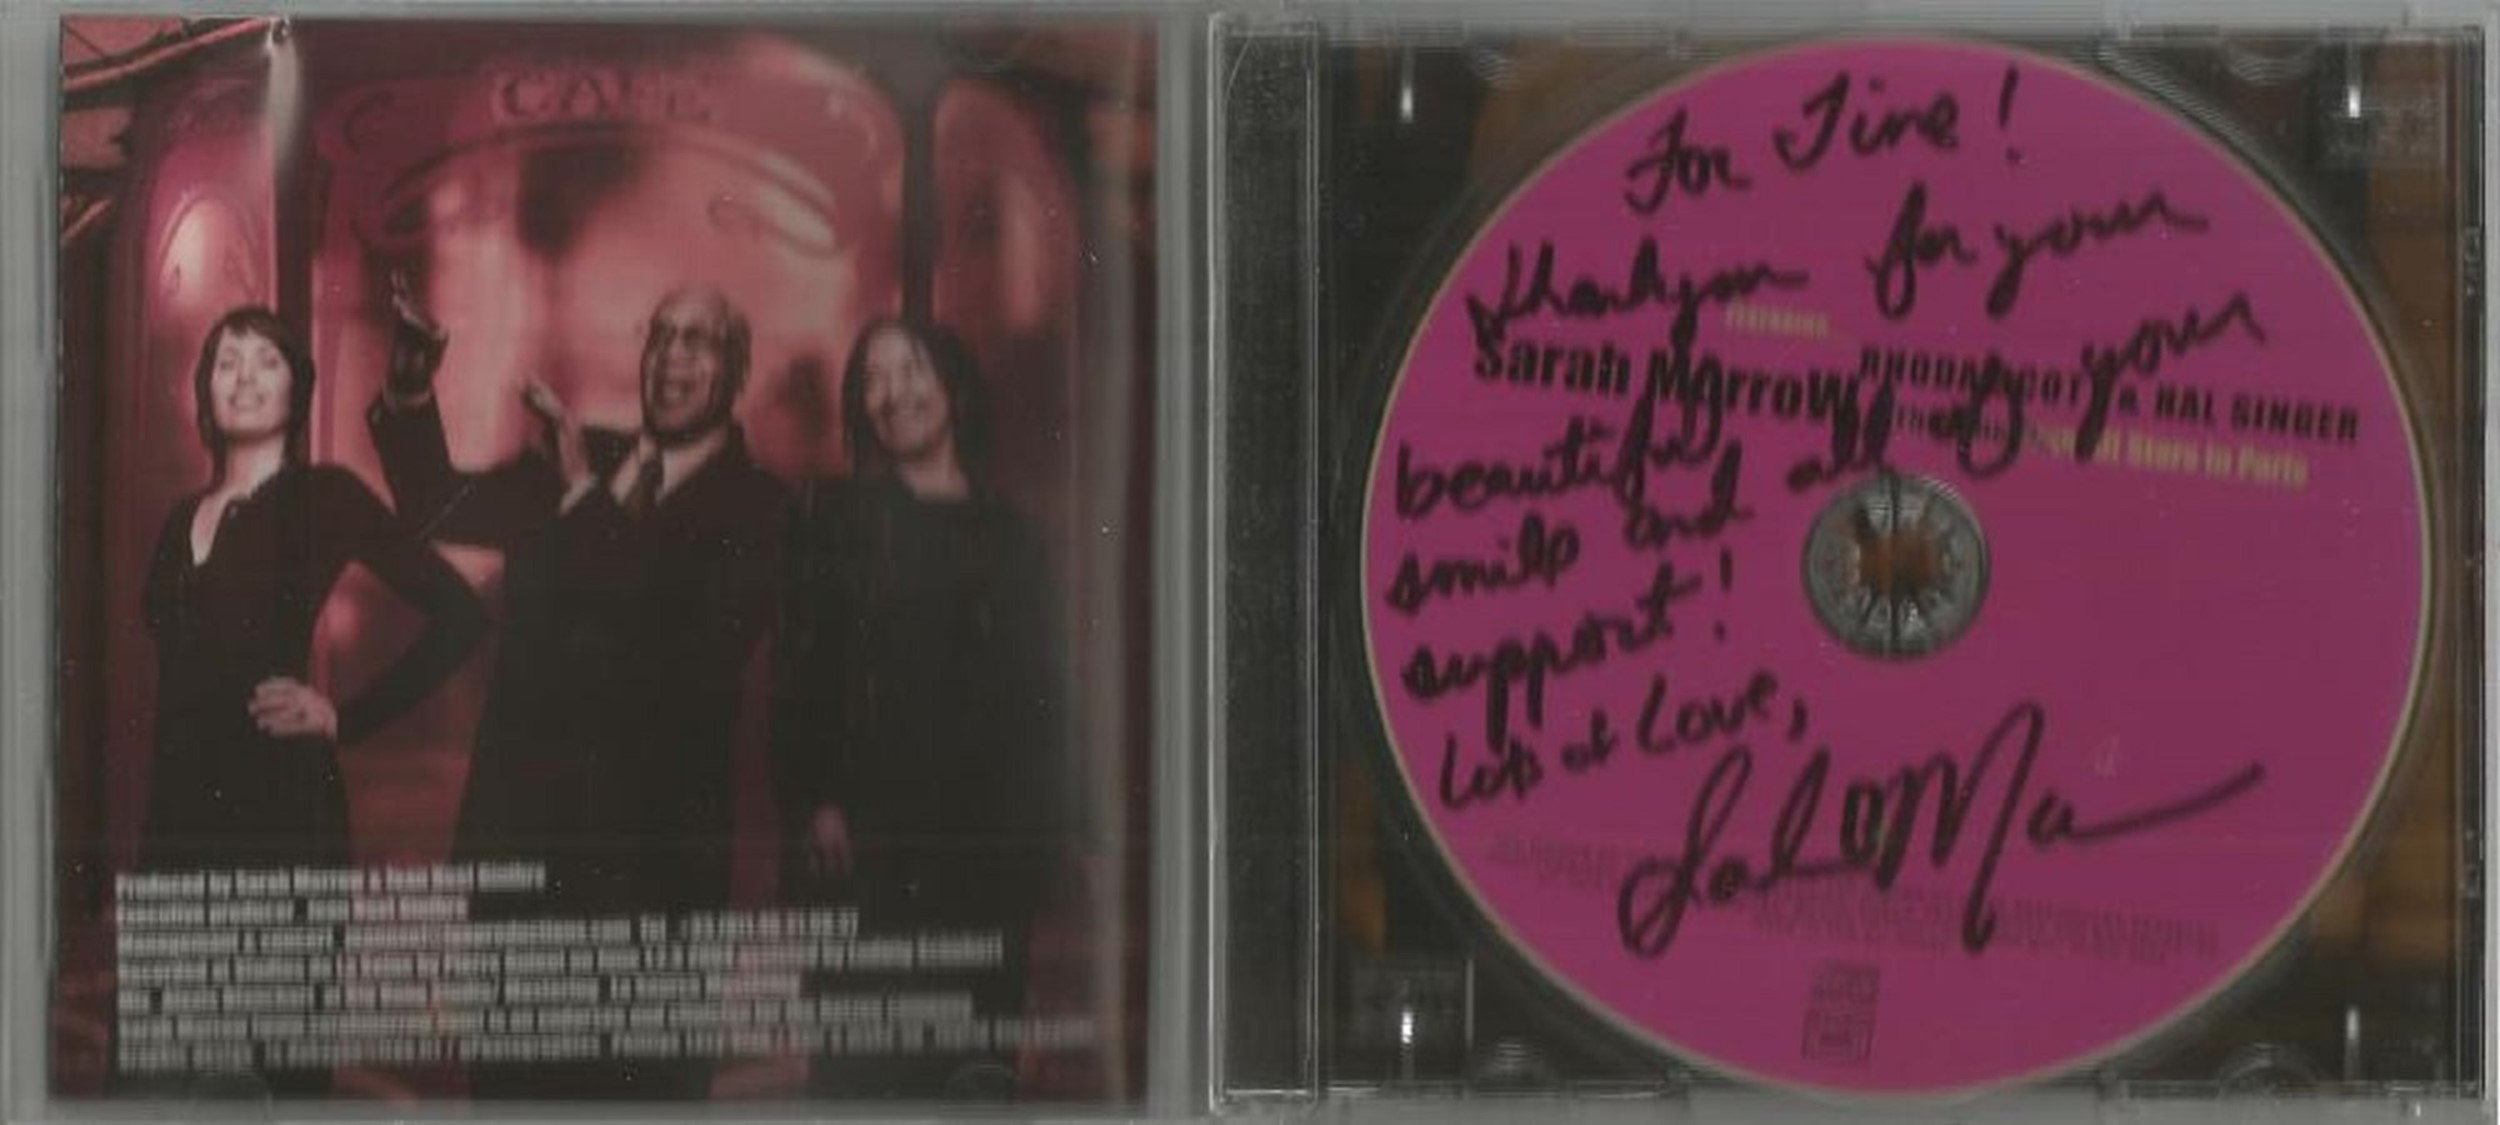 6 Signed CDs Including Andrea Ross Moon River Disc Included, Foley and Hepburn Con Te Partiro Disc - Image 2 of 6